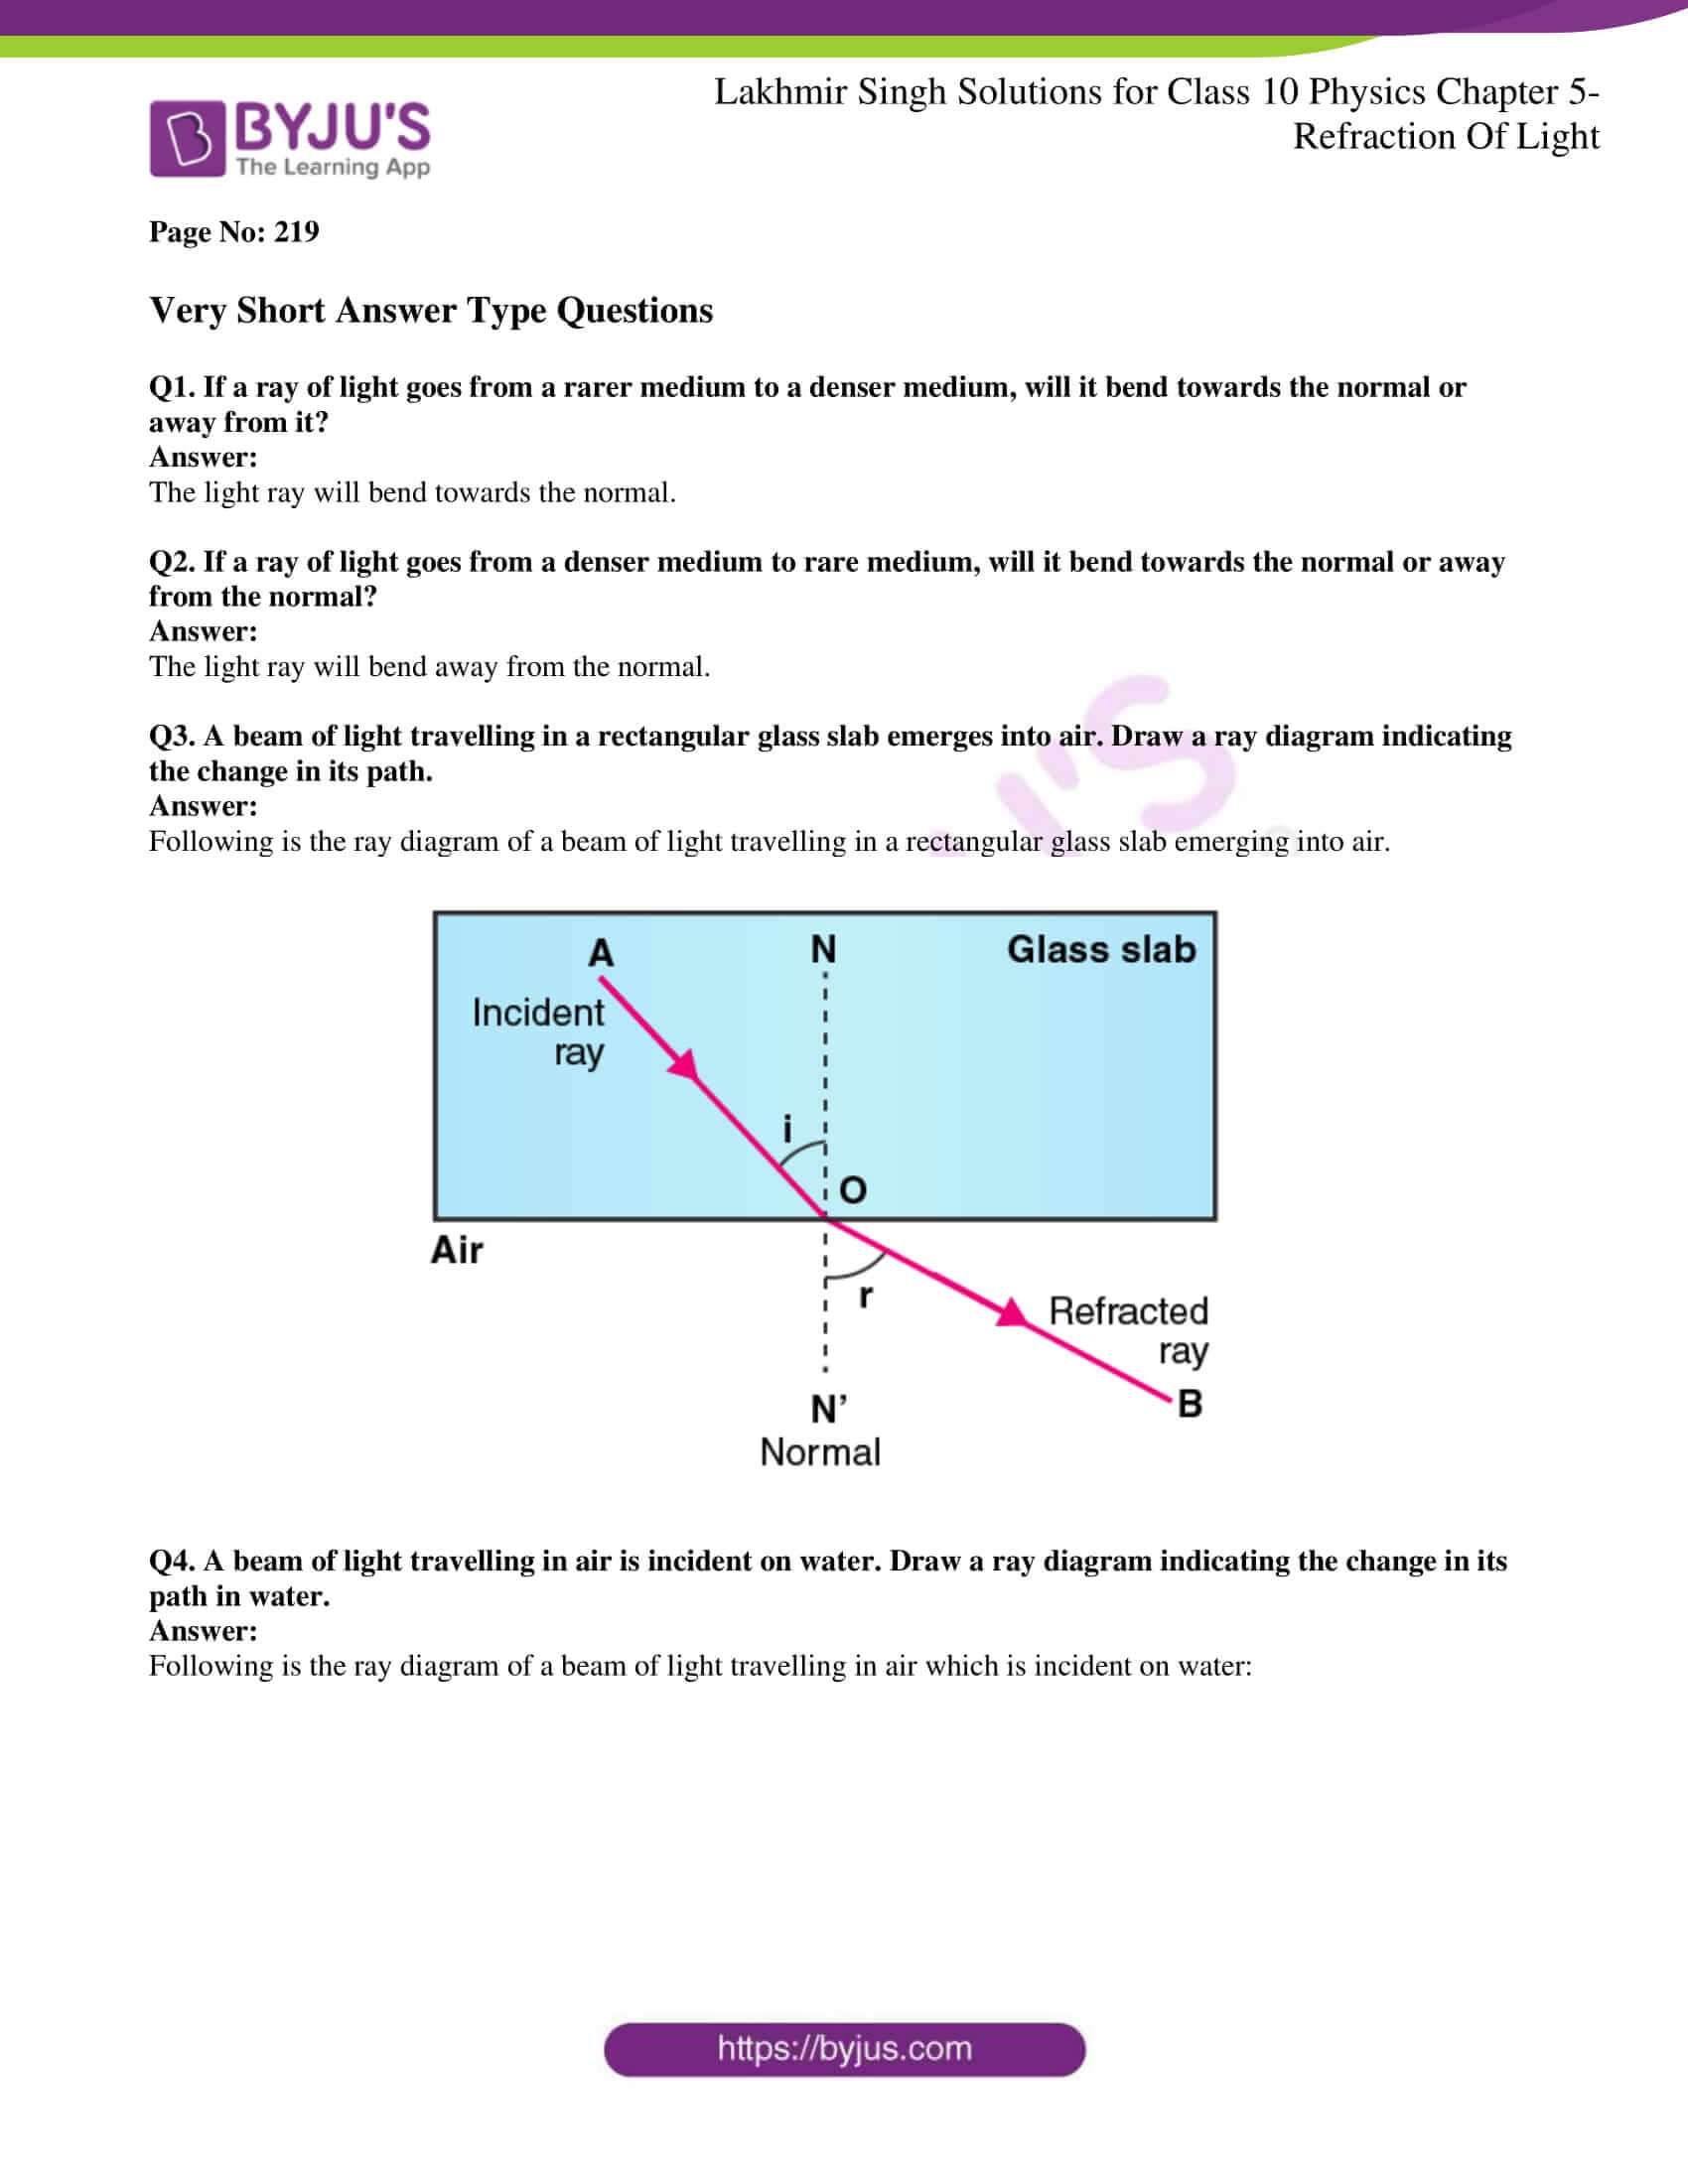 lakhmir singh solutions class 10 physics chapter 5 01